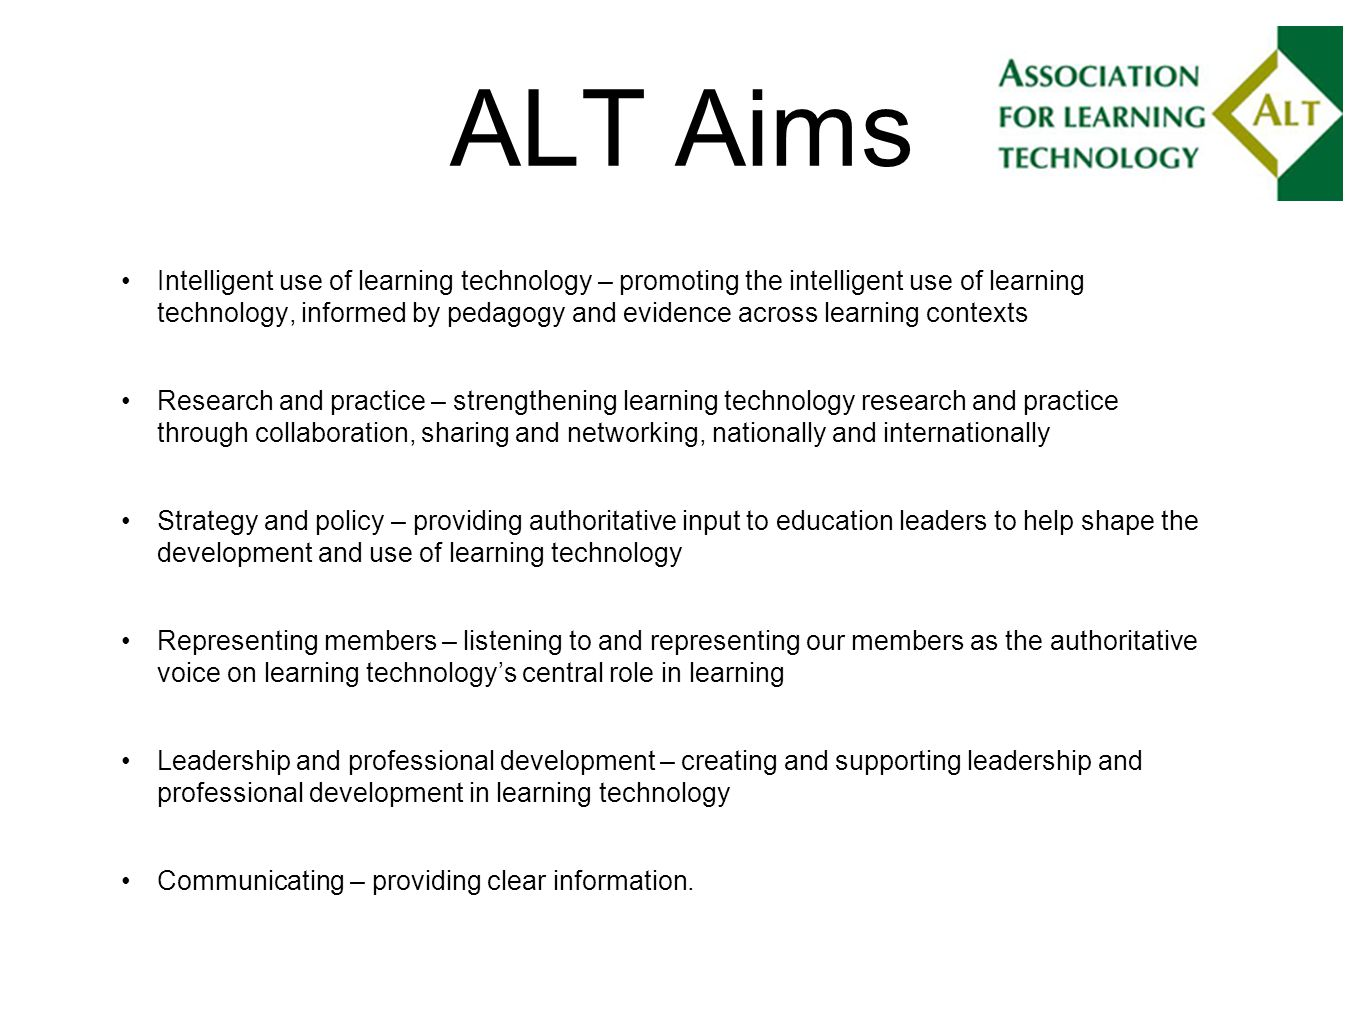 ALT Aims Intelligent use of learning technology – promoting the intelligent use of learning technology, informed by pedagogy and evidence across learning contexts Research and practice – strengthening learning technology research and practice through collaboration, sharing and networking, nationally and internationally Strategy and policy – providing authoritative input to education leaders to help shape the development and use of learning technology Representing members – listening to and representing our members as the authoritative voice on learning technologys central role in learning Leadership and professional development – creating and supporting leadership and professional development in learning technology Communicating – providing clear information.